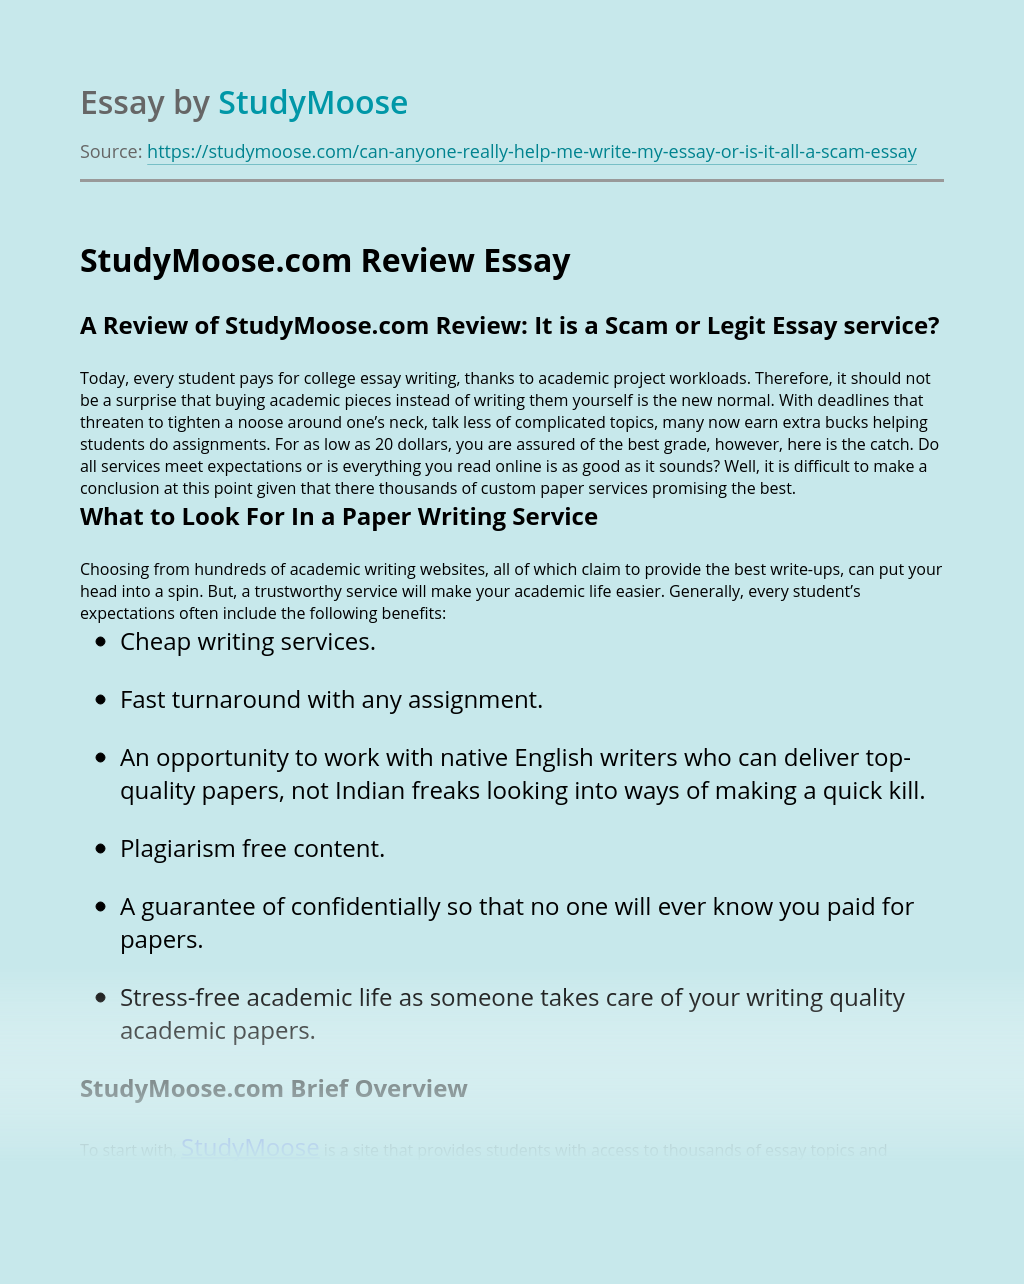 StudyMoose.com Review